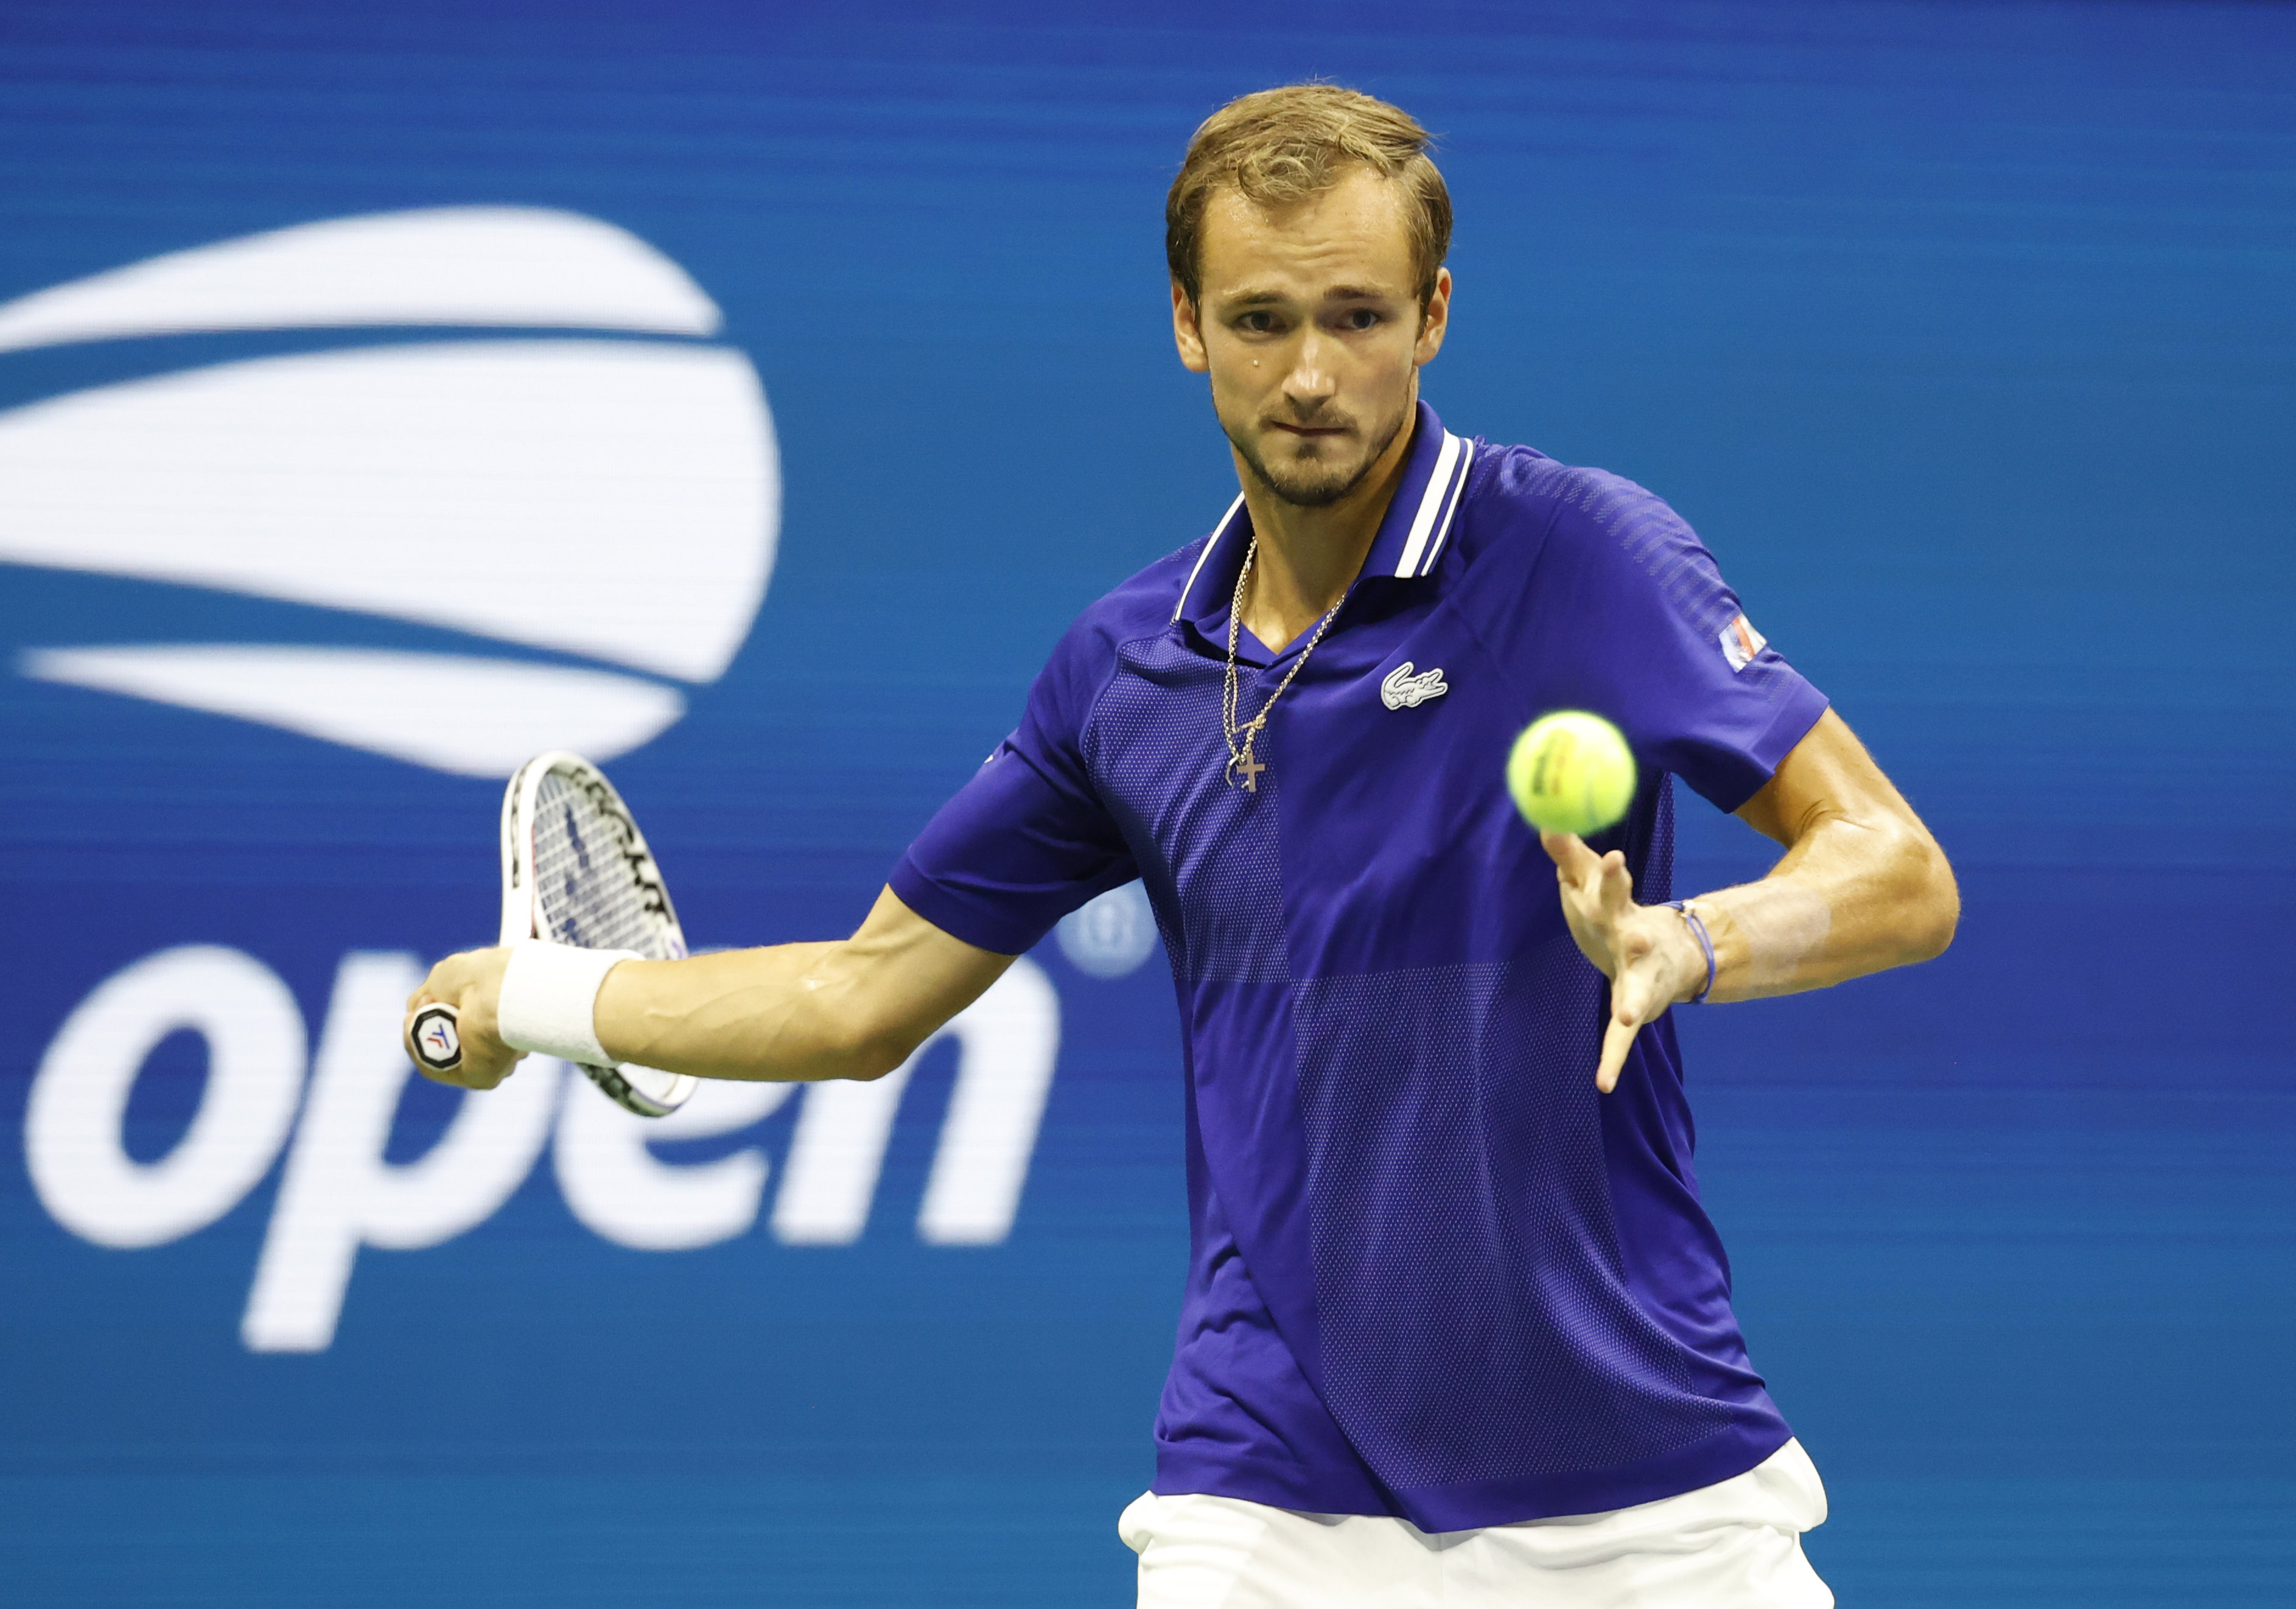 Aug 30, 2021; Flushing, NY, USA; Daniil Medvedev of Russia returns a shot Richard Gasquet of France in the first round on day one of the 2021 U.S. Open tennis tournament at USTA Billie King National Tennis Center. Mandatory Credit: Jerry Lai-USA TODAY Sports